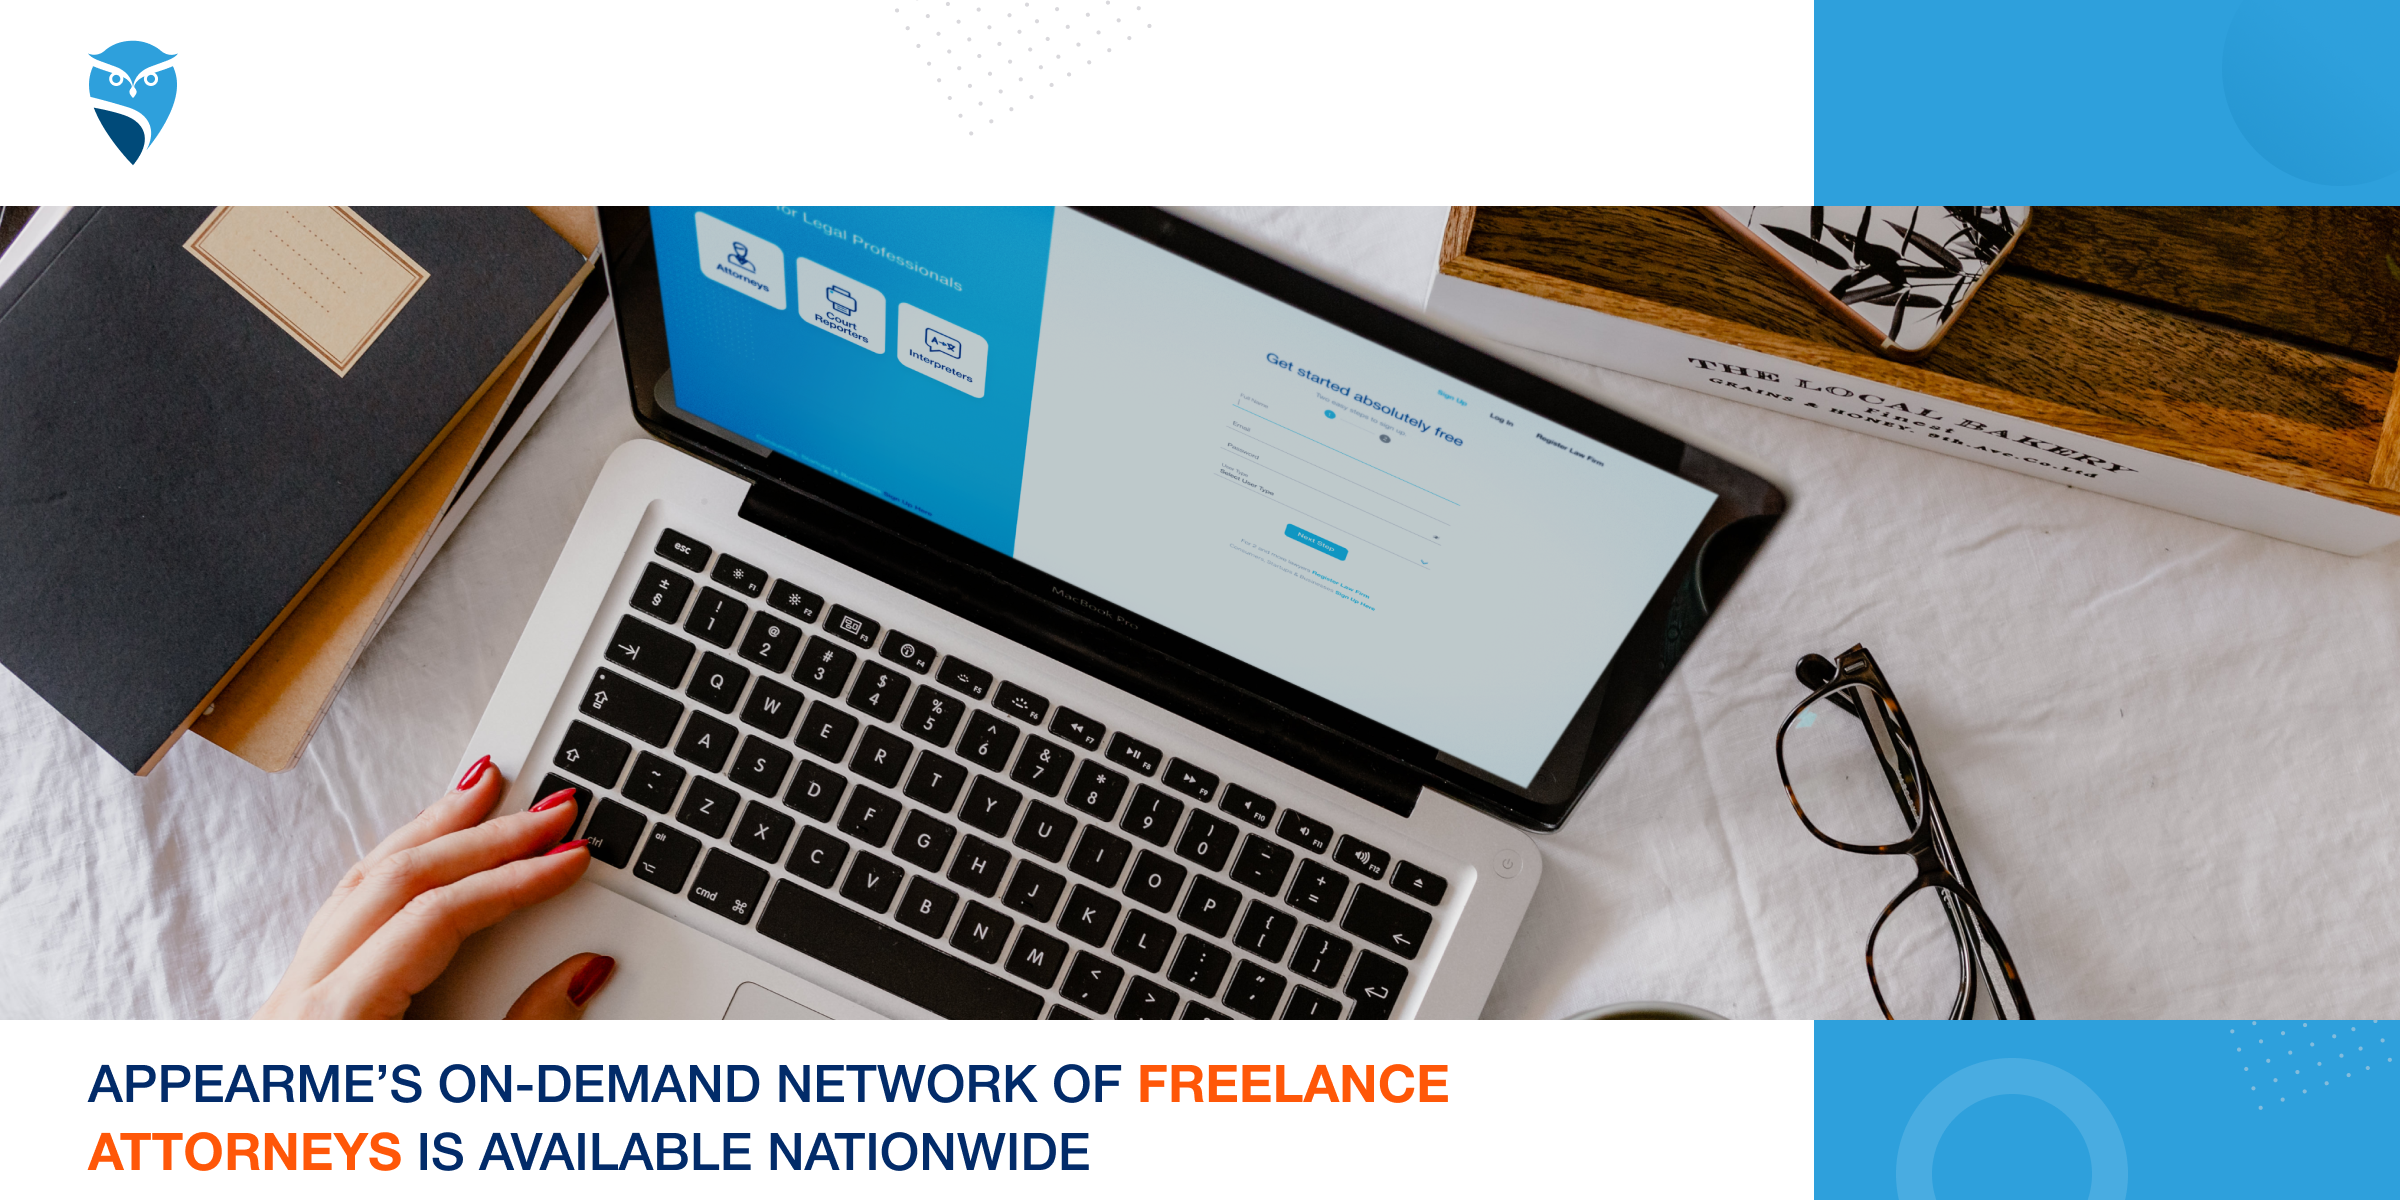 AppearMe's On-Demand Network of Freelance Attorneys is Available Nationwide to Help You Get More Work Done